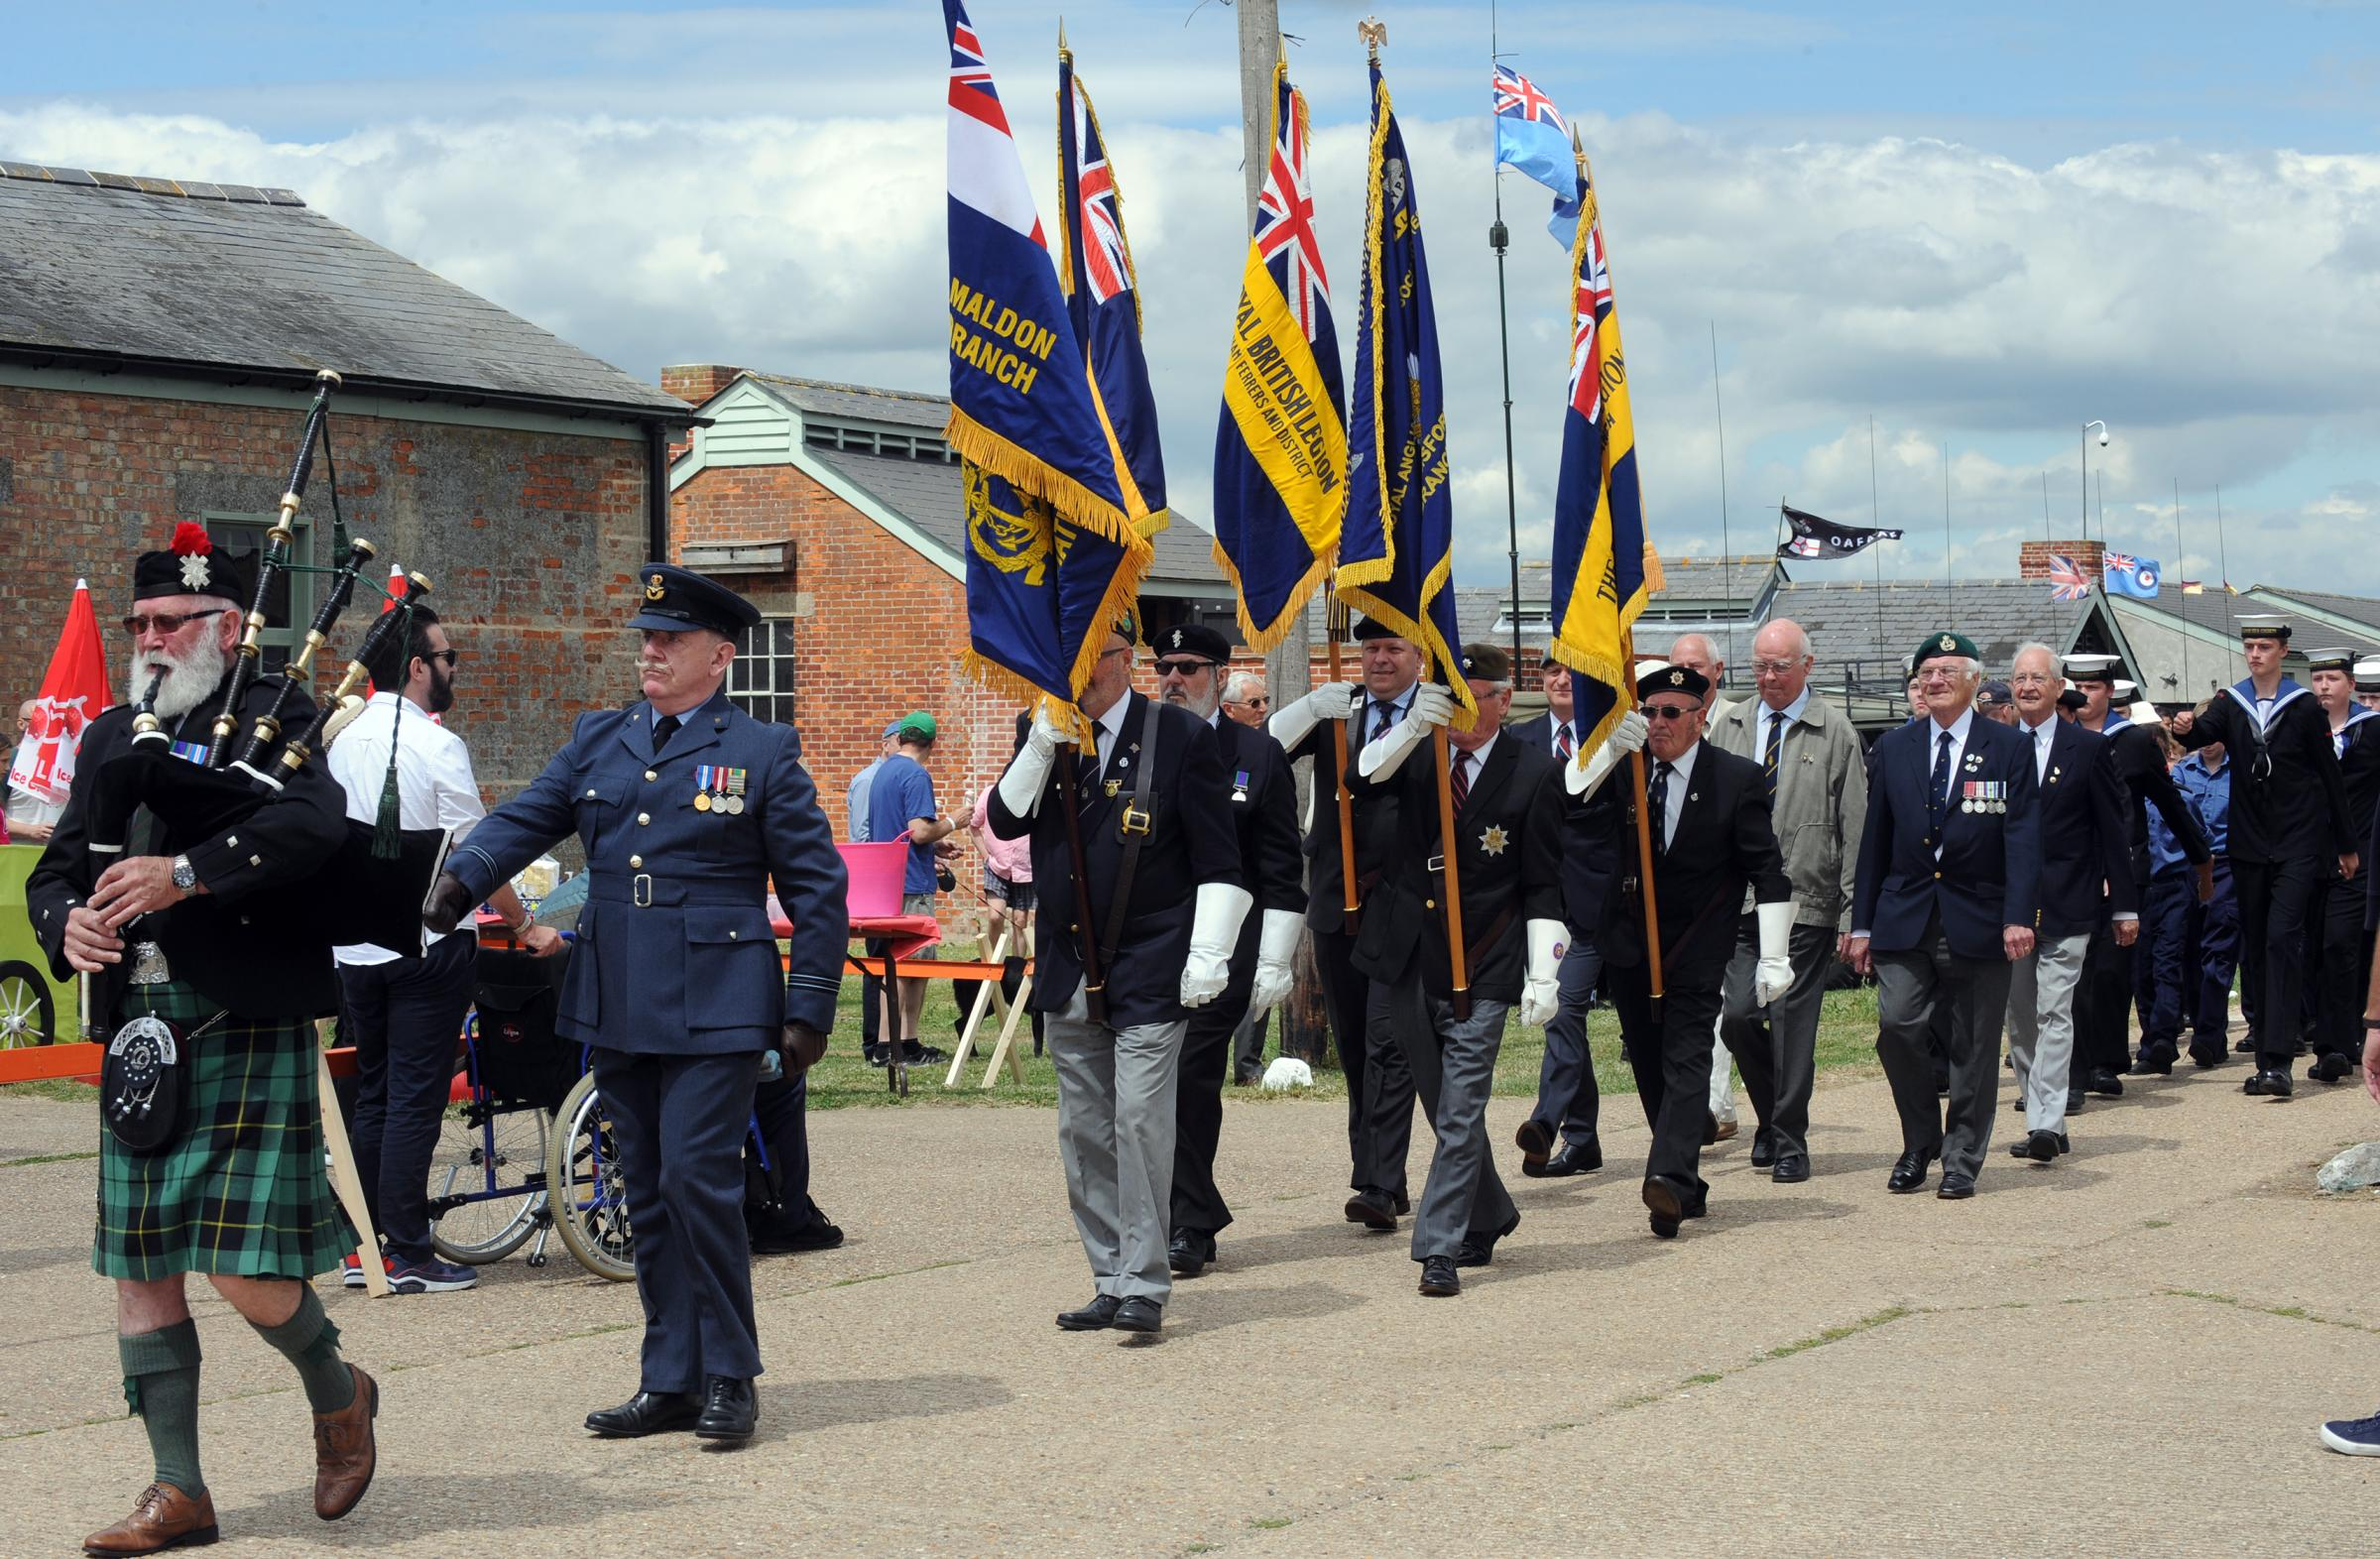 Armed Forces Day at Stow Maries Aerodrome, 24/06/2017.pArade and Service.the Parade was led by Piper William Wallace from Essex Caledonian Pipers.